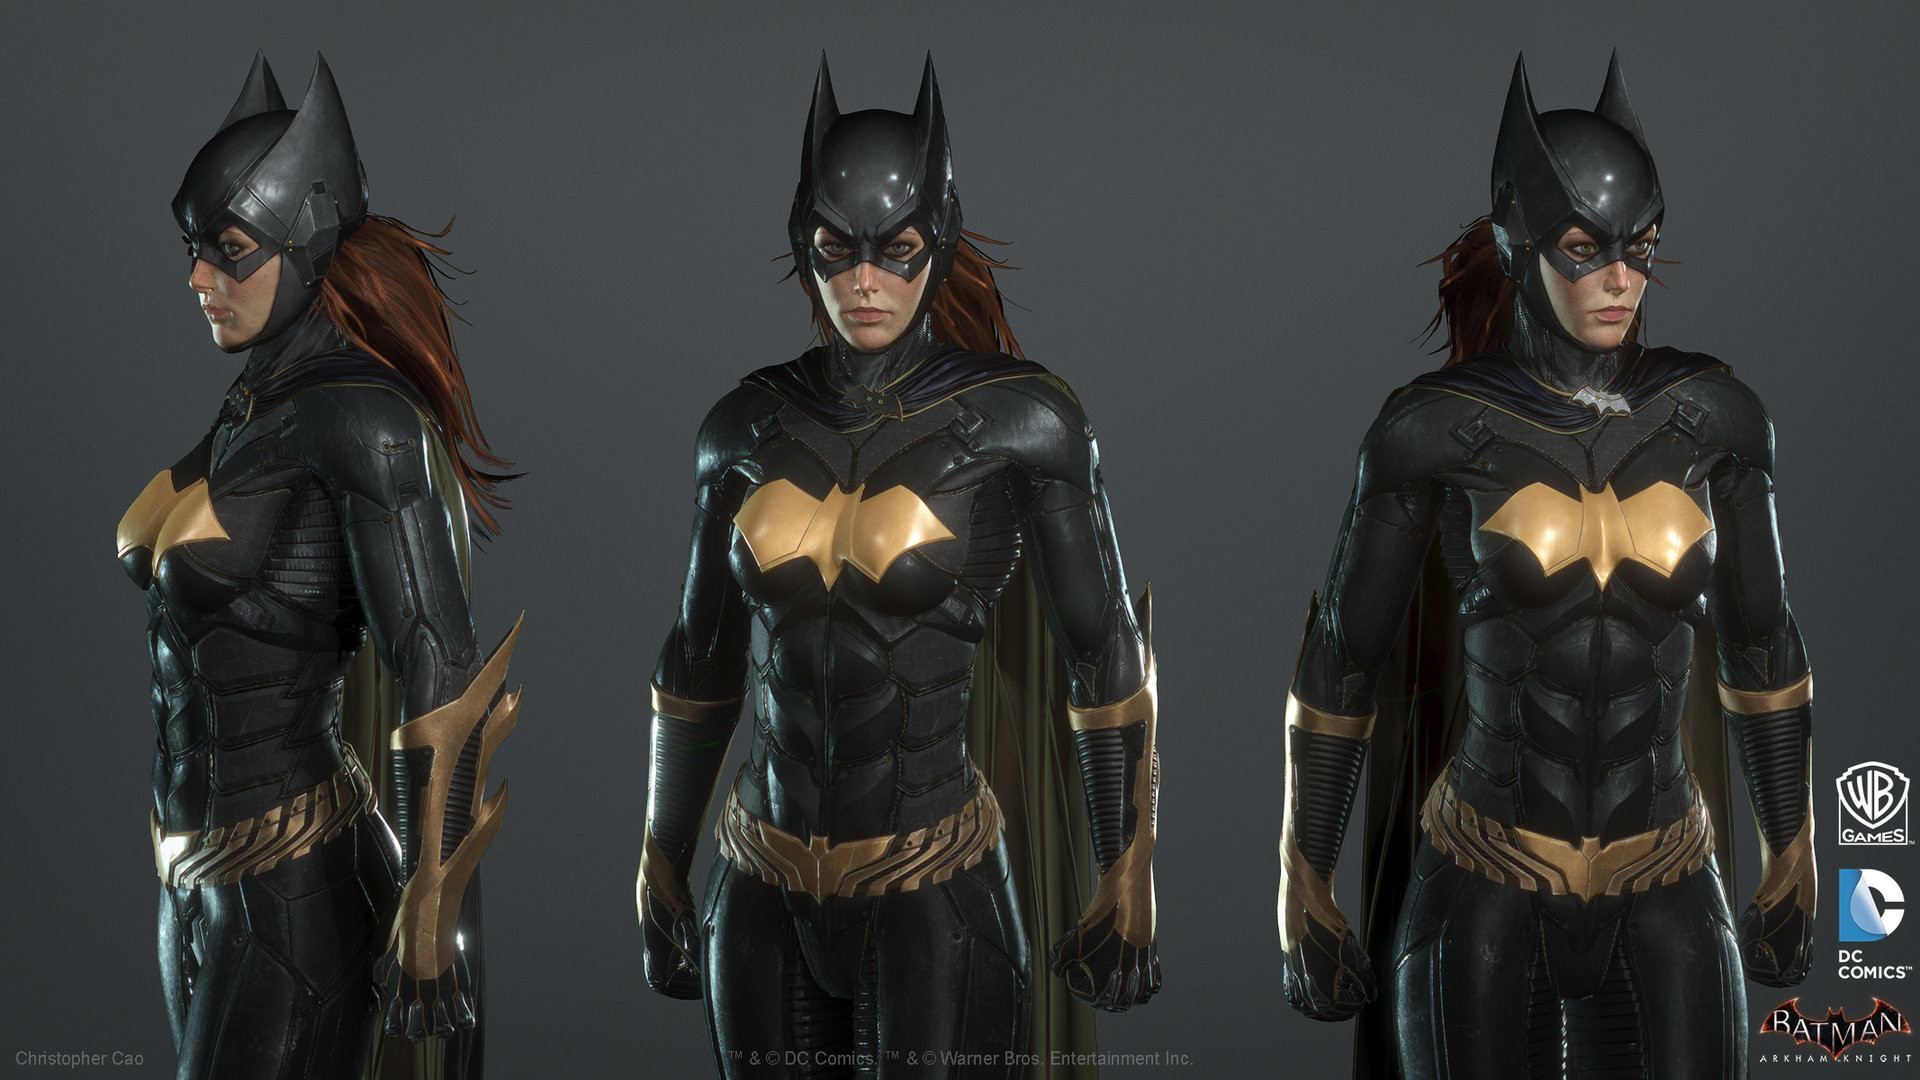 1920x1080 Batman: Arkham Knight DLC, Batgirl Game Model, Christopher Cao on ArtStation